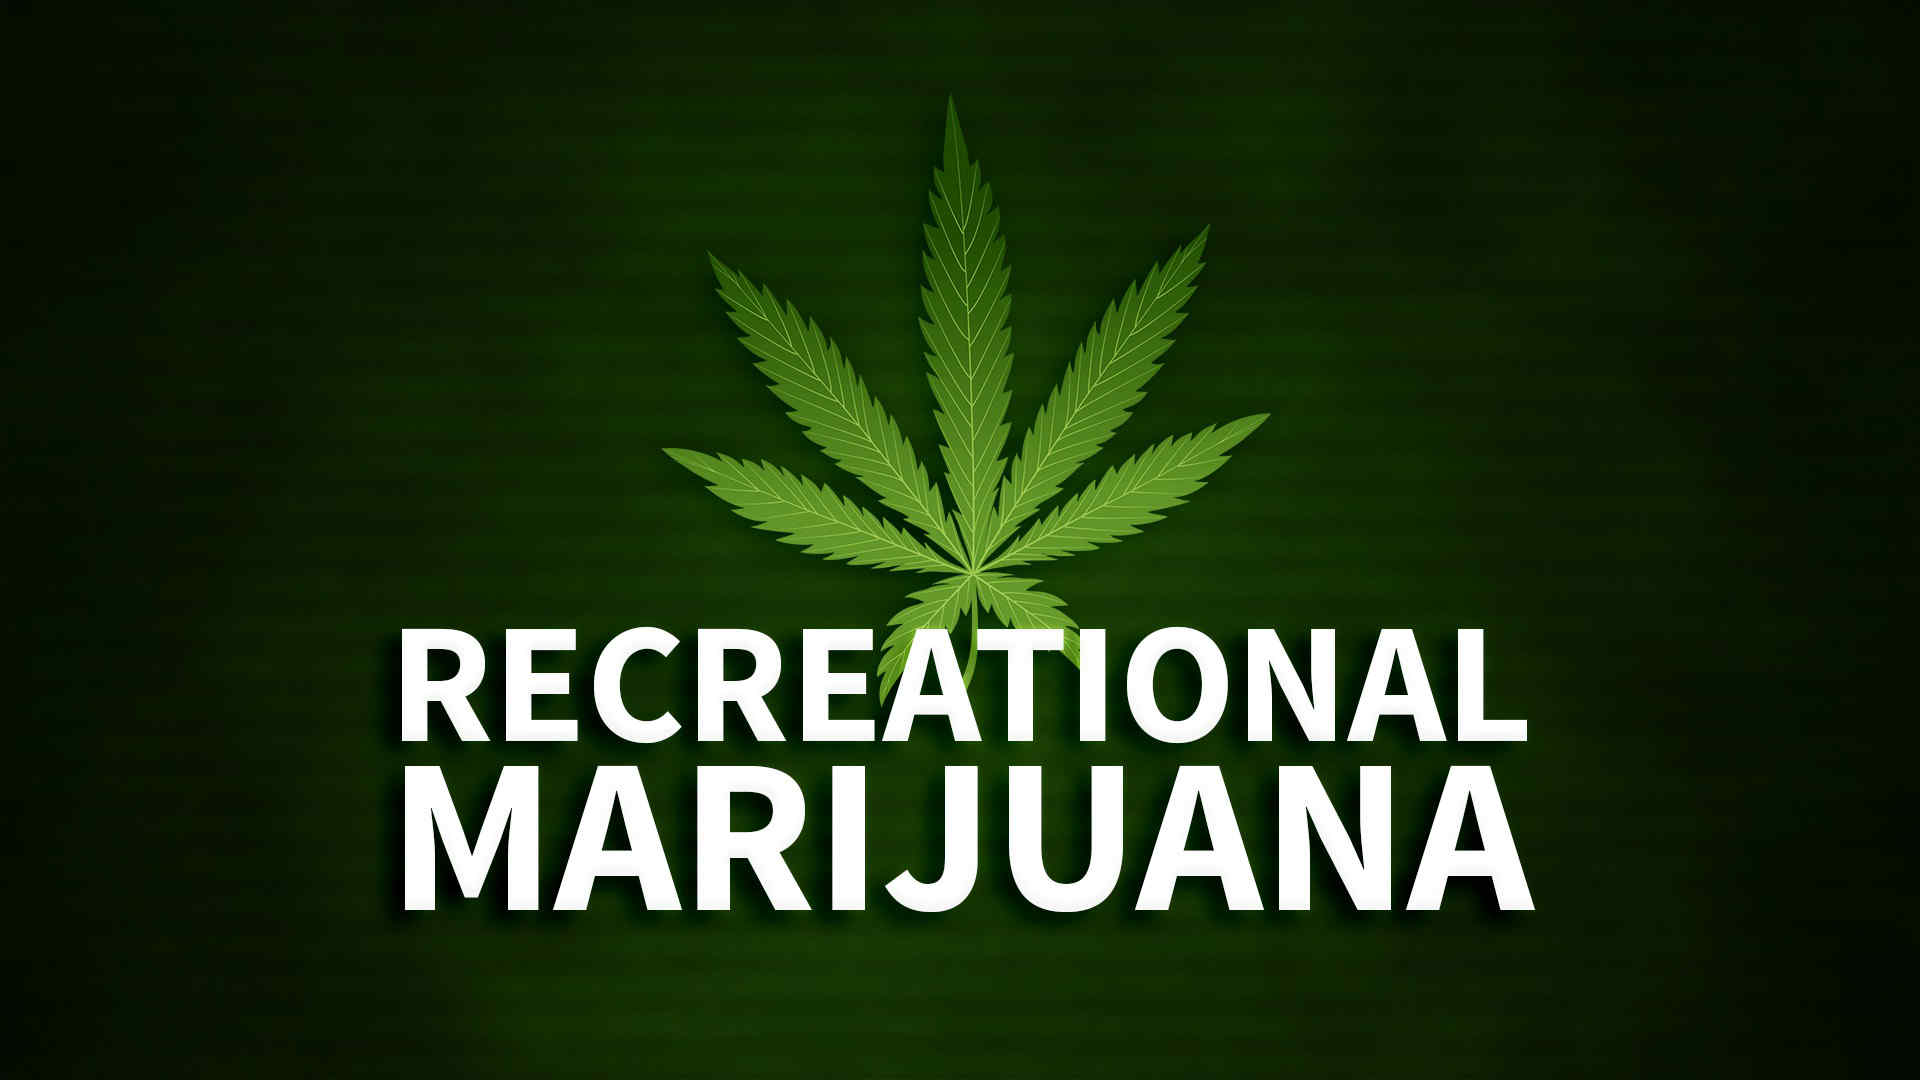 New Mexico trying to get recreational marijuana legal